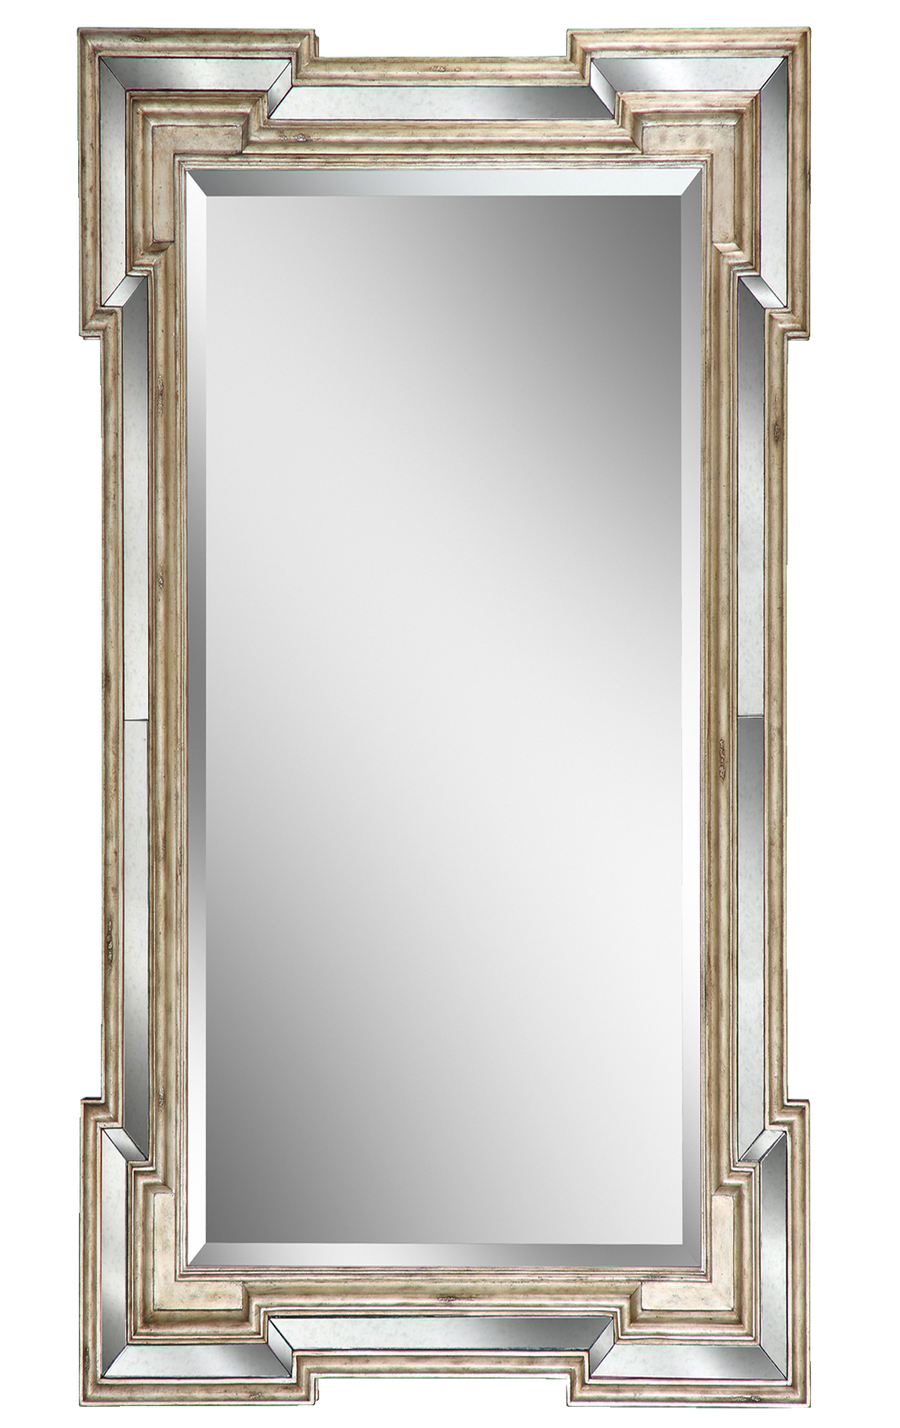 Rivoli Mirror shown with:Silver Cloud finishAntique Mirror panel insetClear mirror with beveled edge